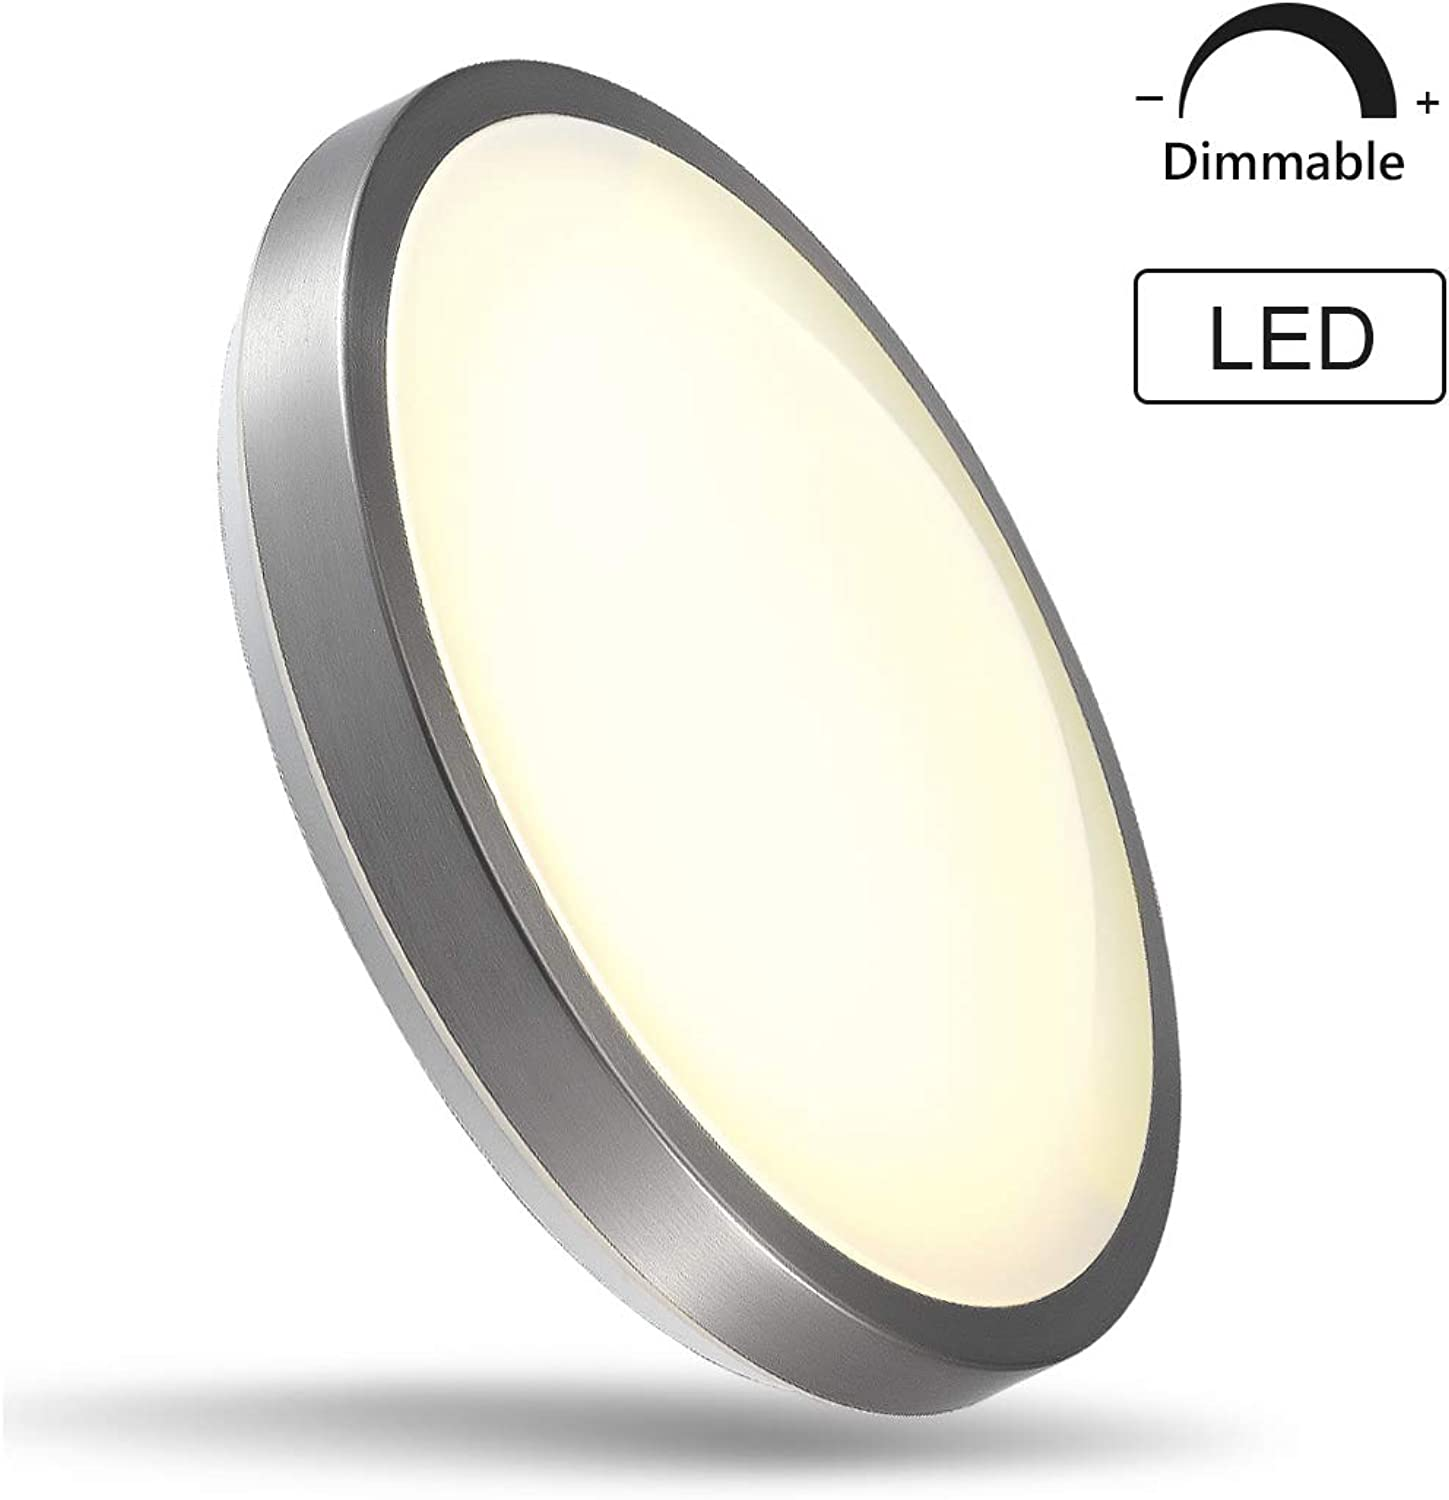 CORSO 16  Round LED Flush Mount Ceiling Light Modern Dimmable Fixture for Living Bed Dining Room, Stepless Dimming, 23W(180W Equivalent), 3000K Warm White, Brushed Nickel Finish